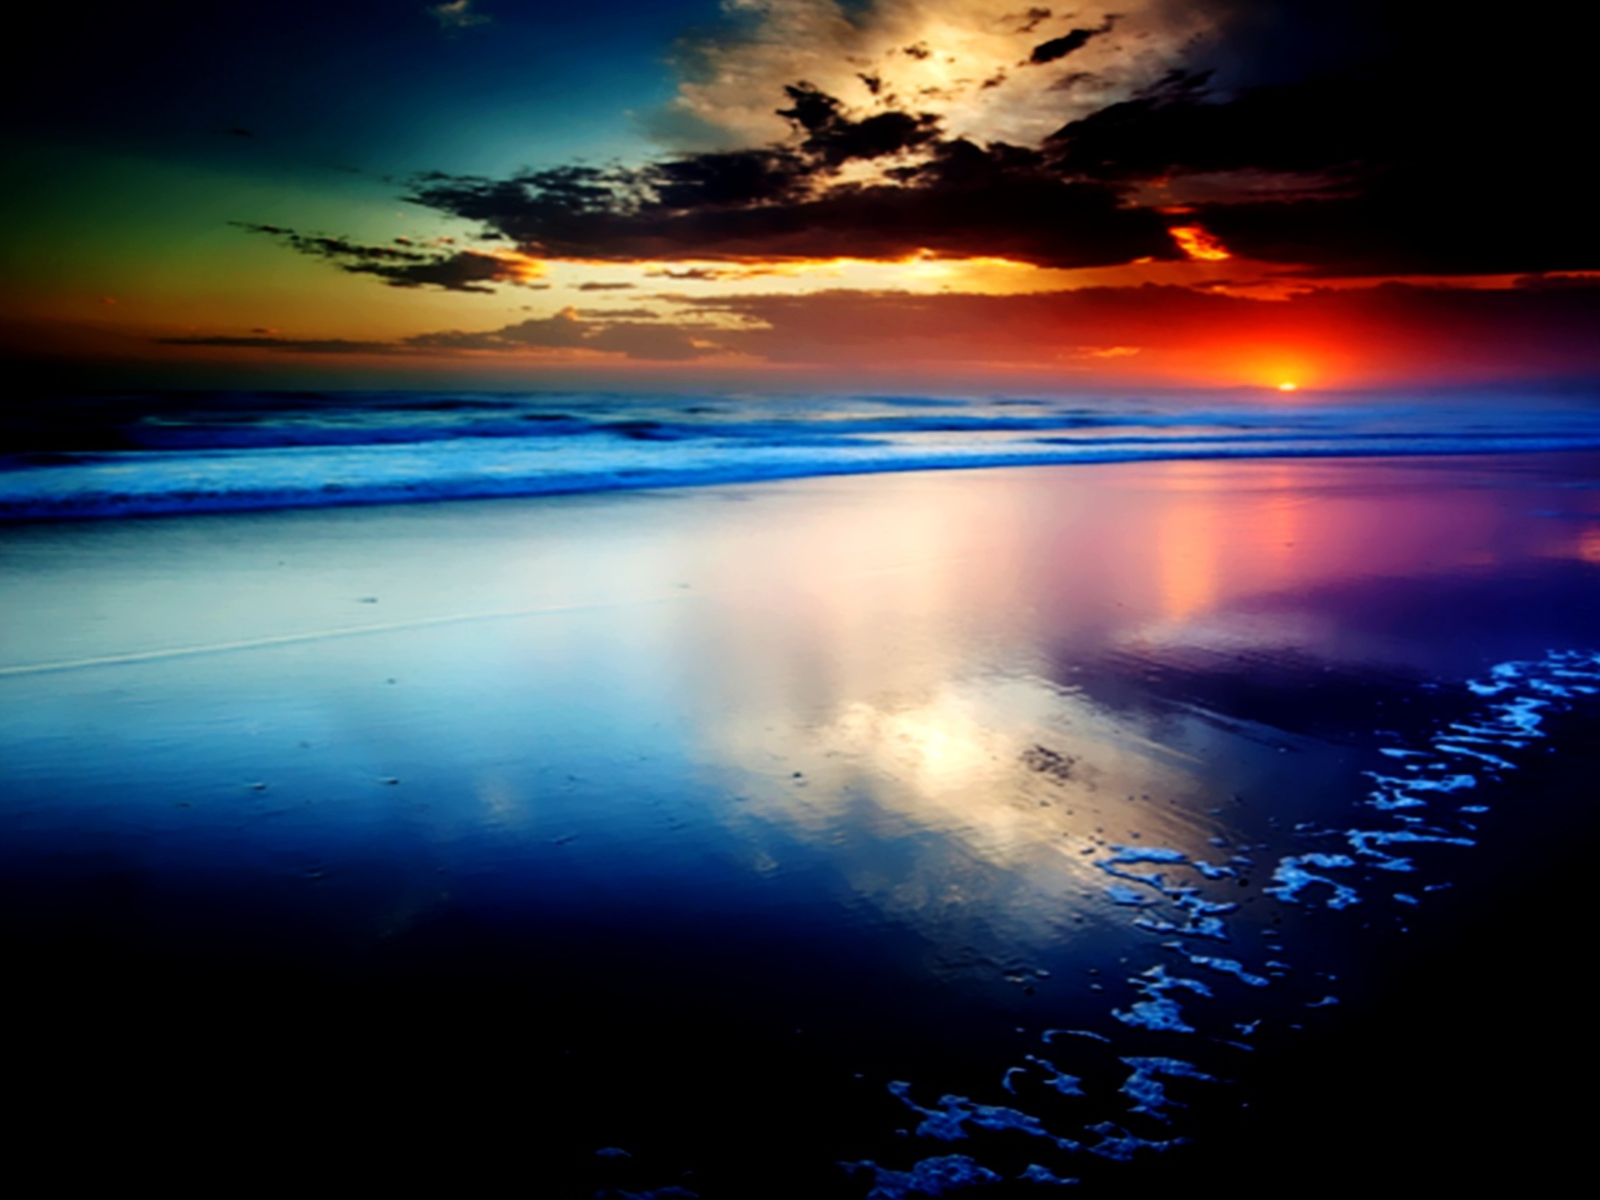 Desktop backgrounds ocean wallpapersafari - Ocean pictures for desktop background ...